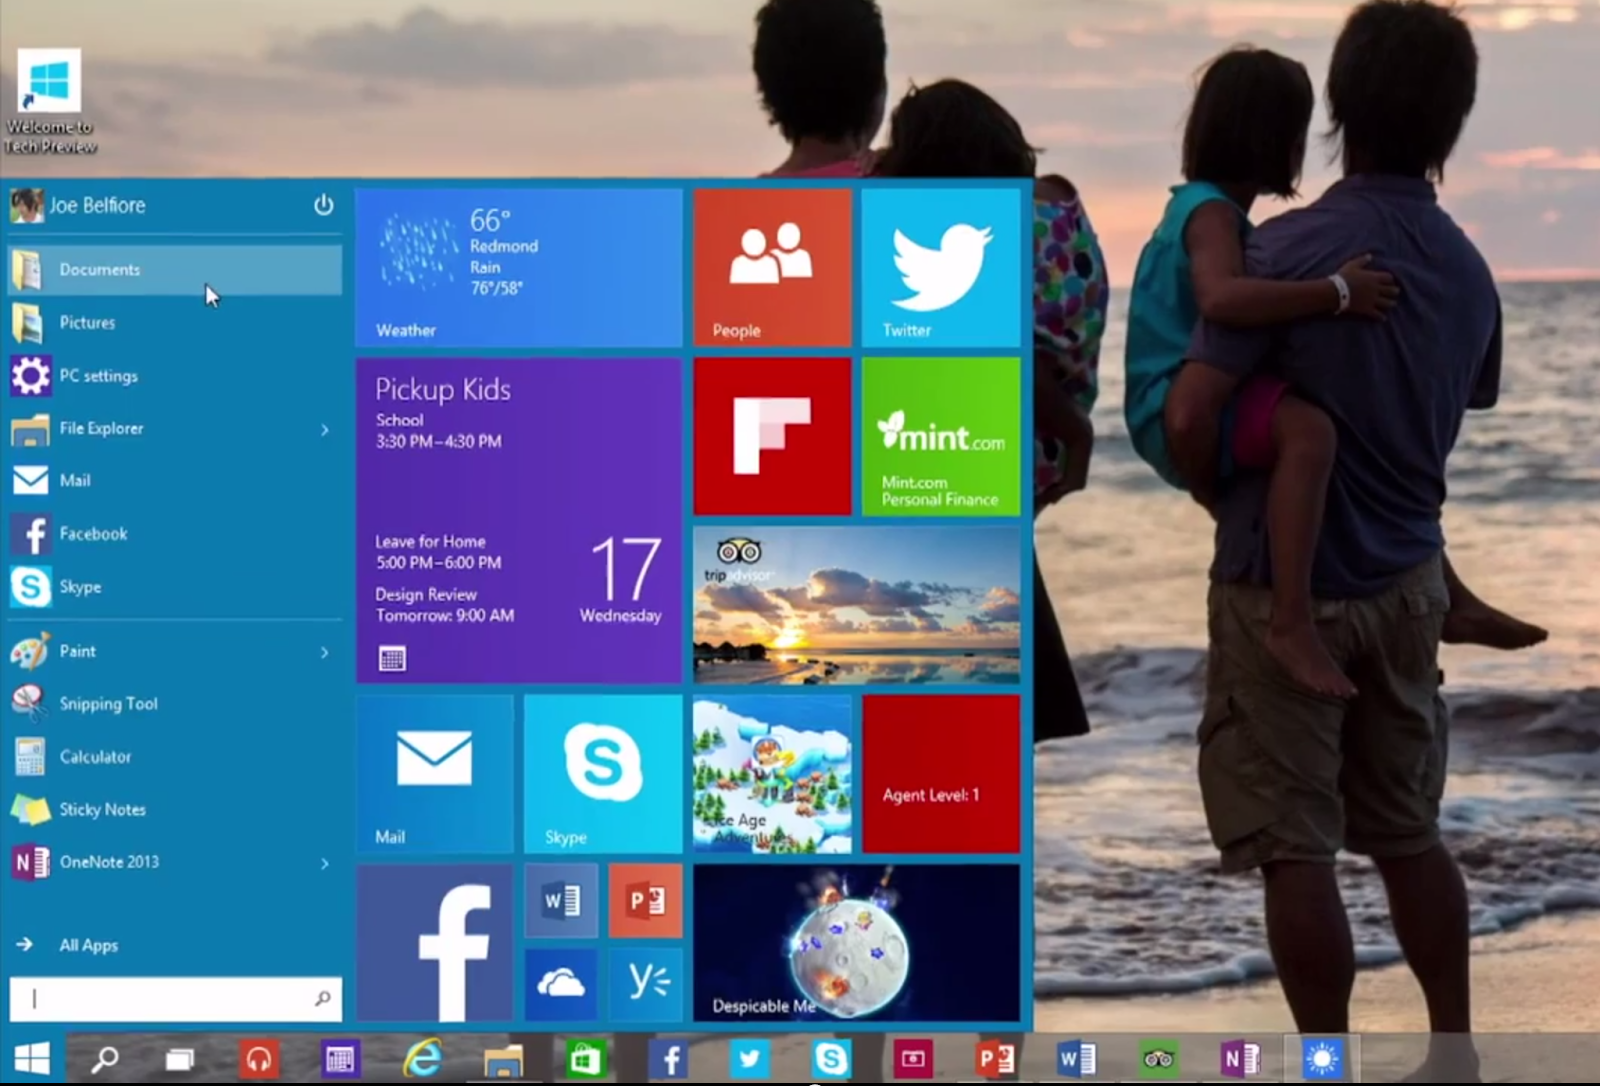 The Start Menu on Windows 10